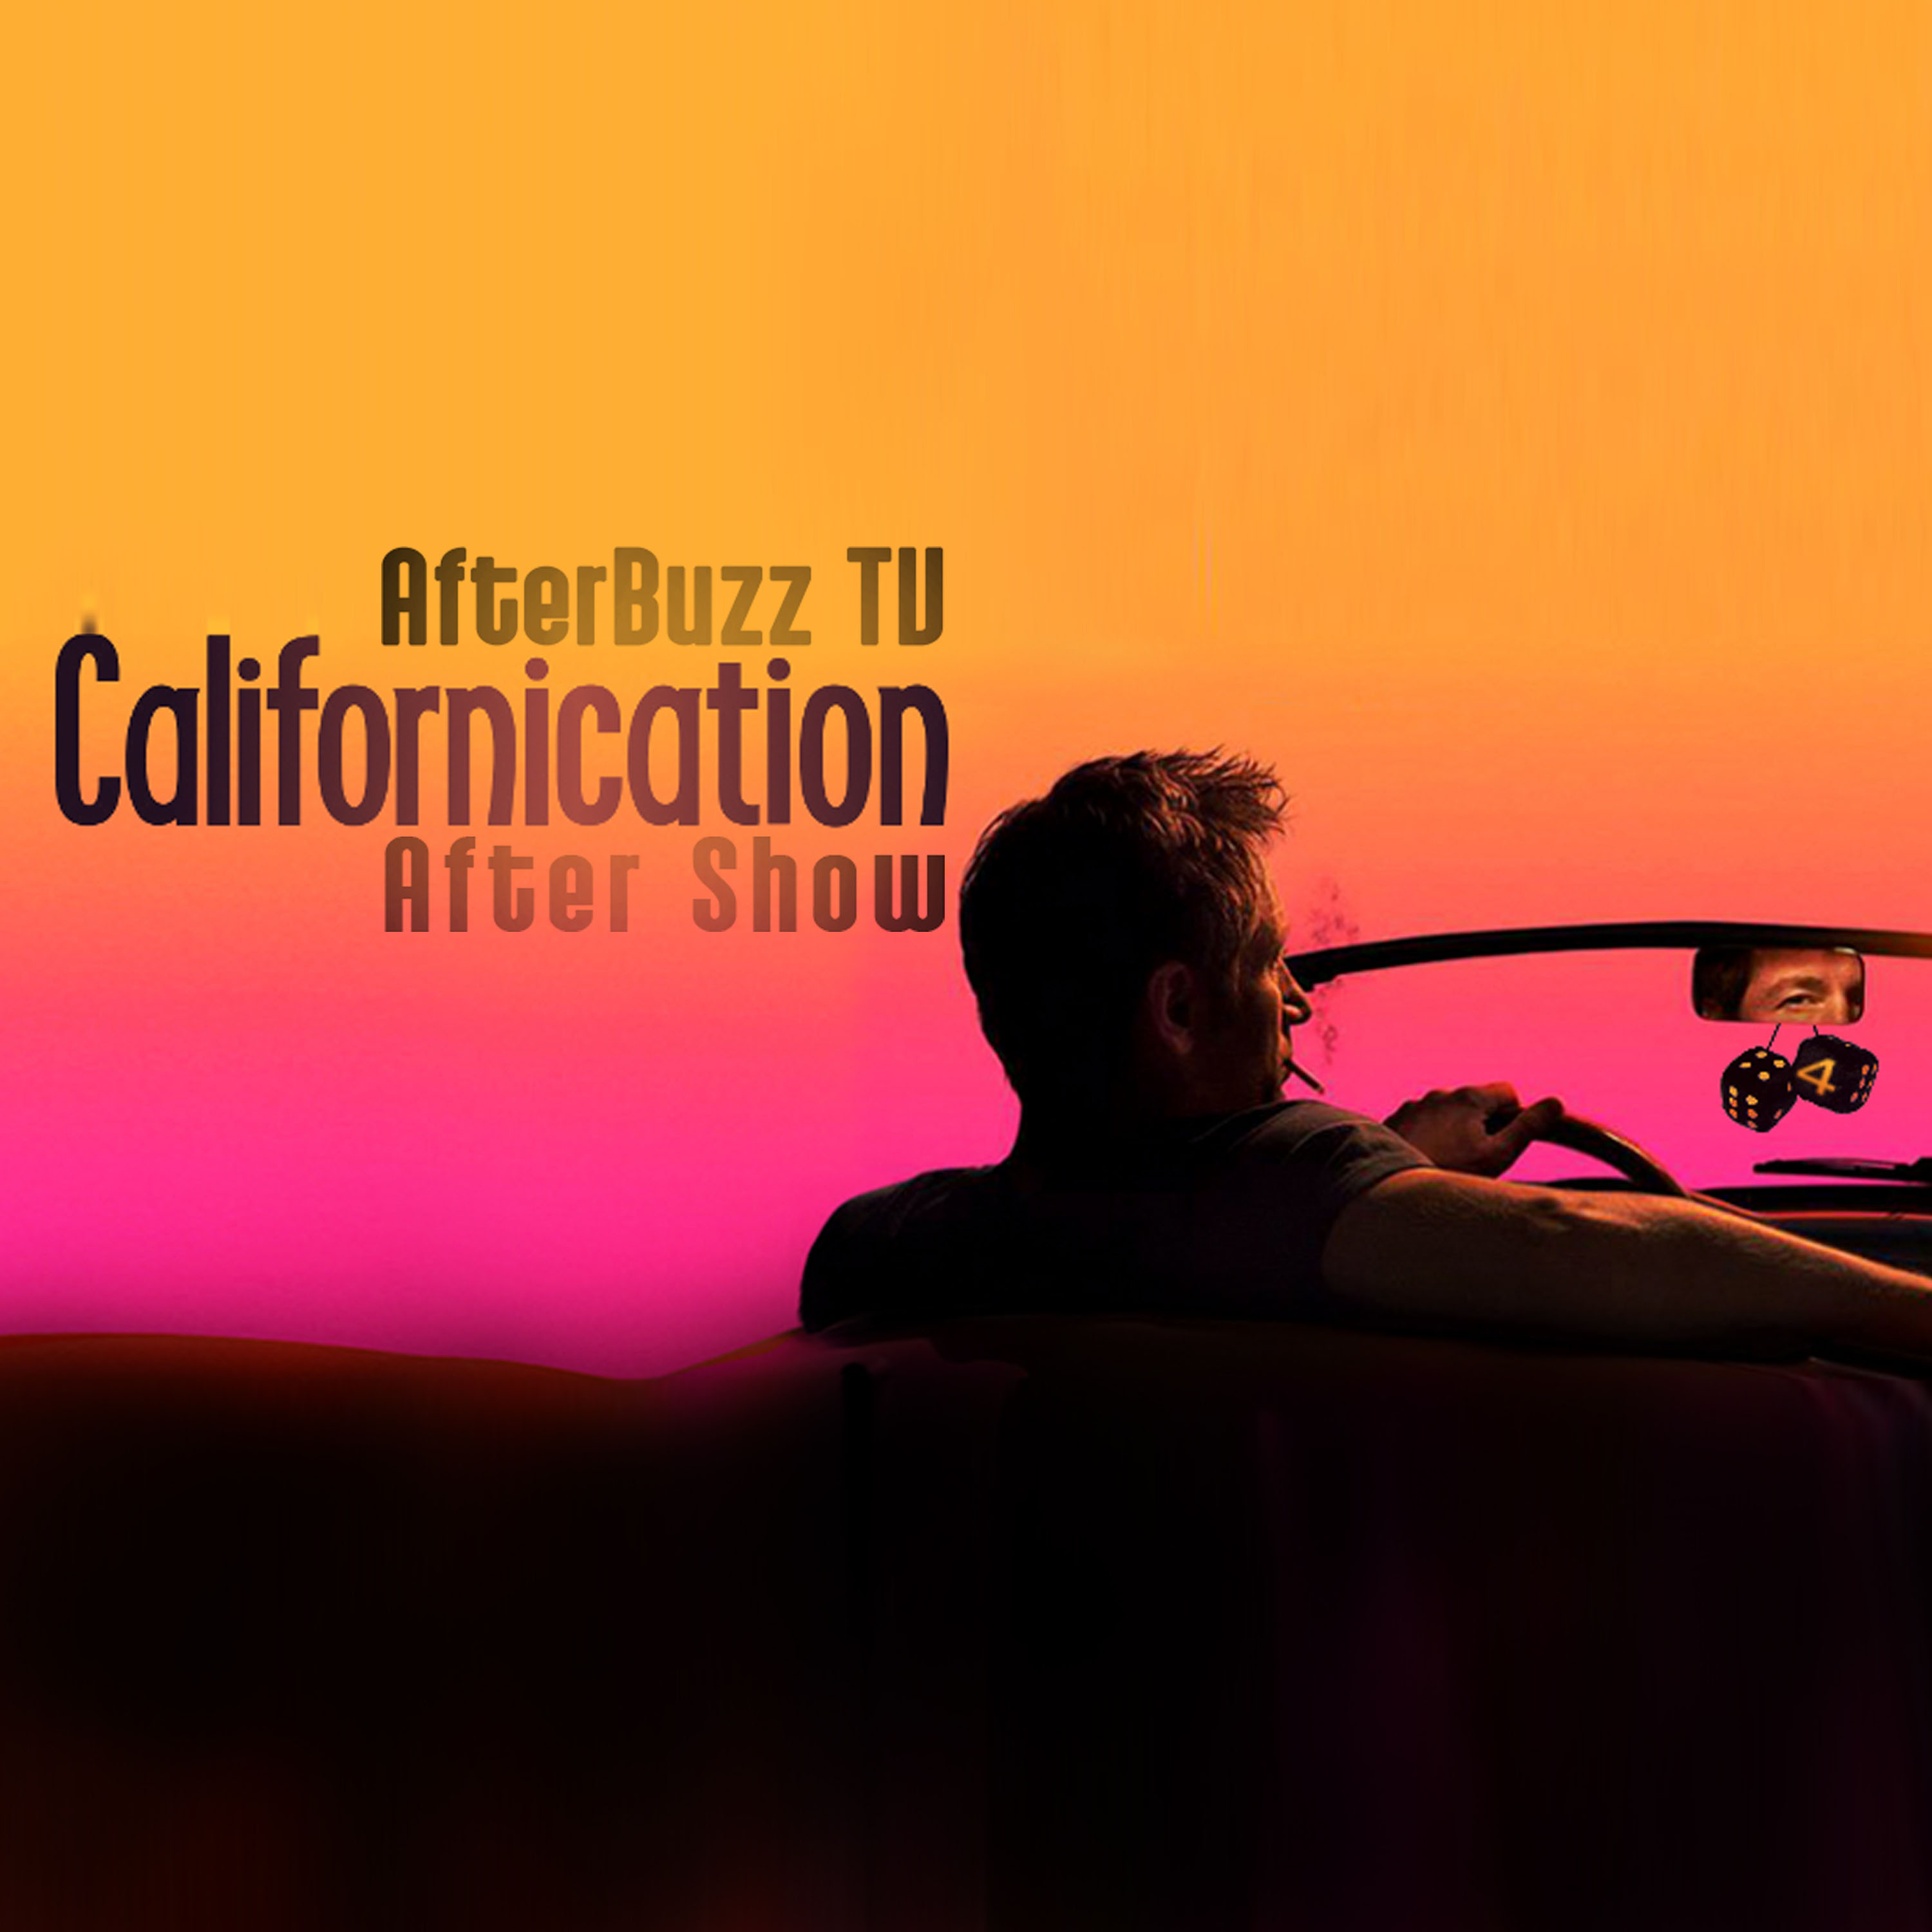 Californication After Show